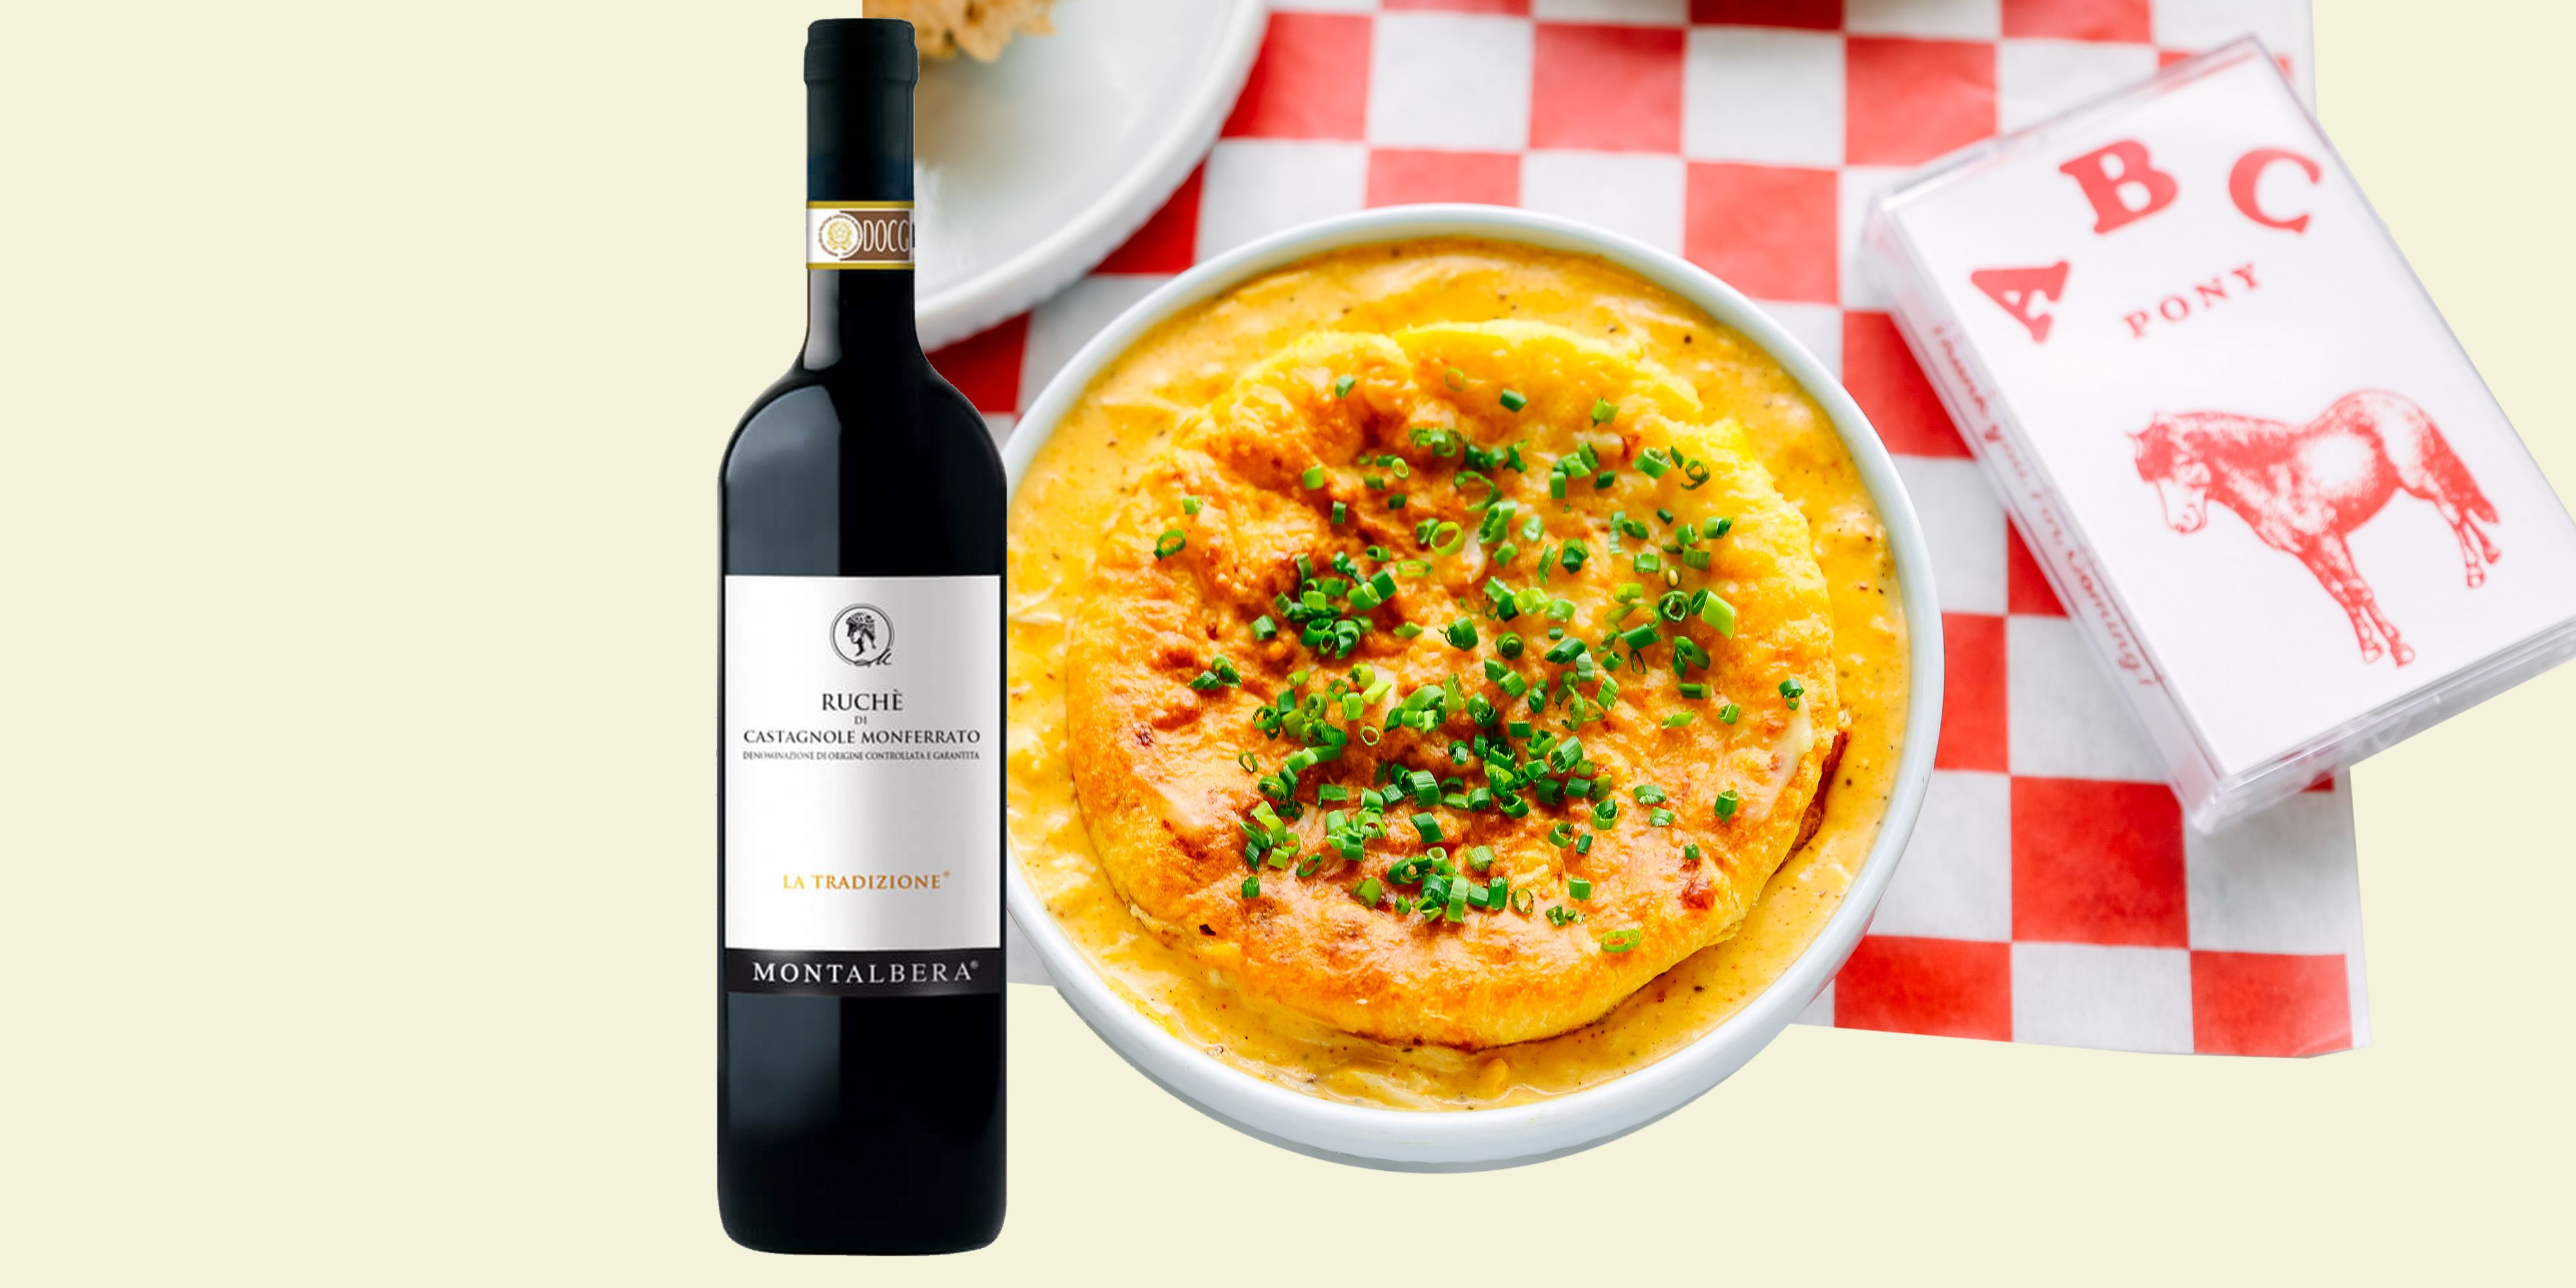 The Easy Appetizer and Versatile Wines You Need This Thanksgiving